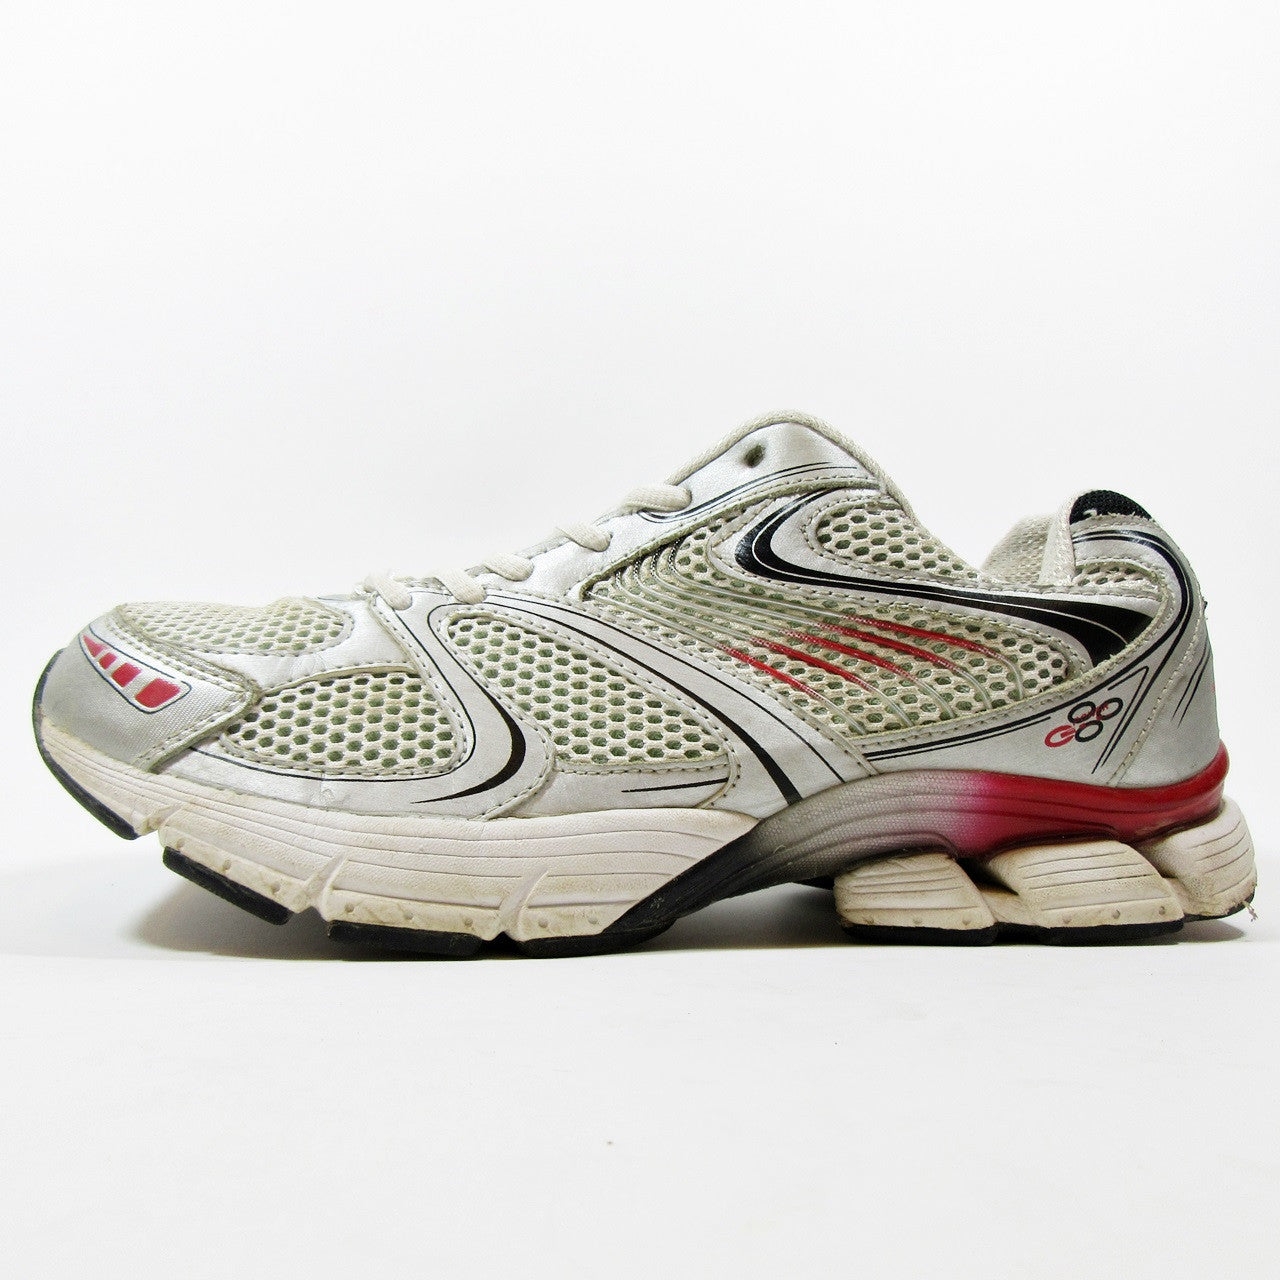 mizuno mens running shoes size 9 years old king clancy